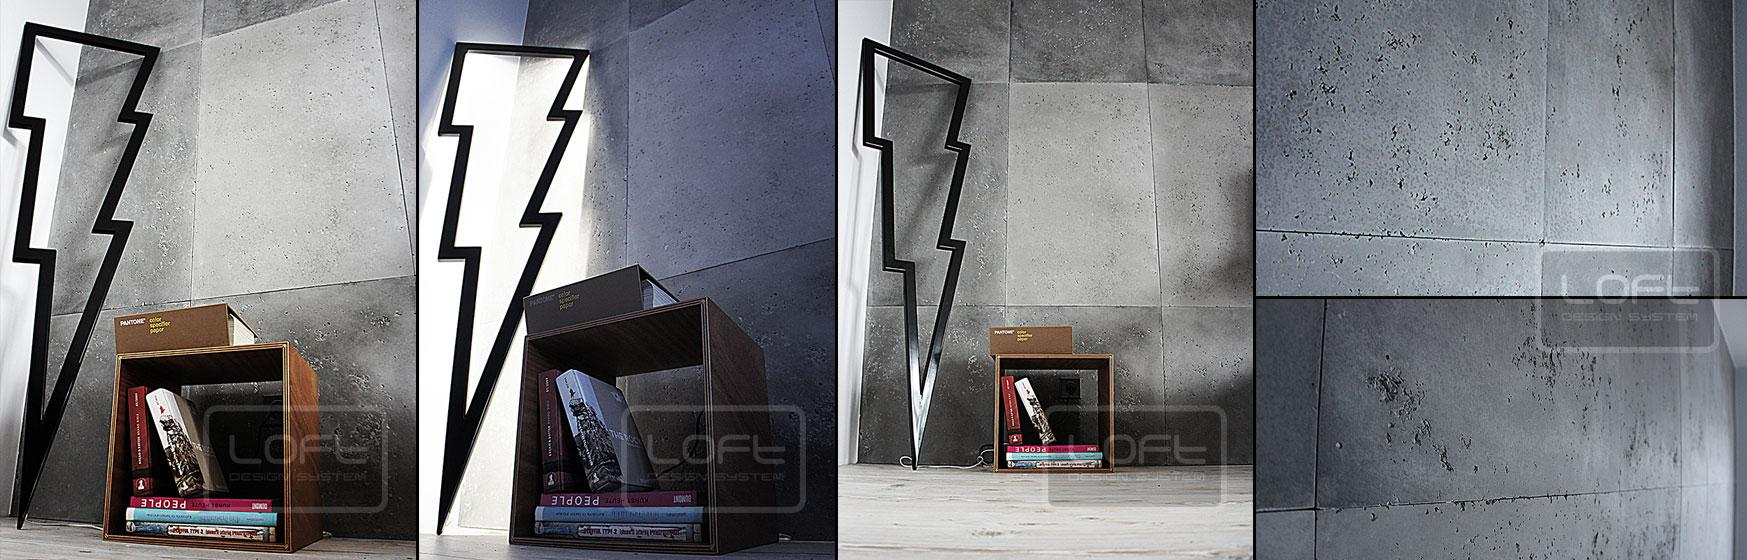 Wandpaneele in Beton-Optik #wandverkleidung #wandgestaltung #wandpaneel ©Loft Design System